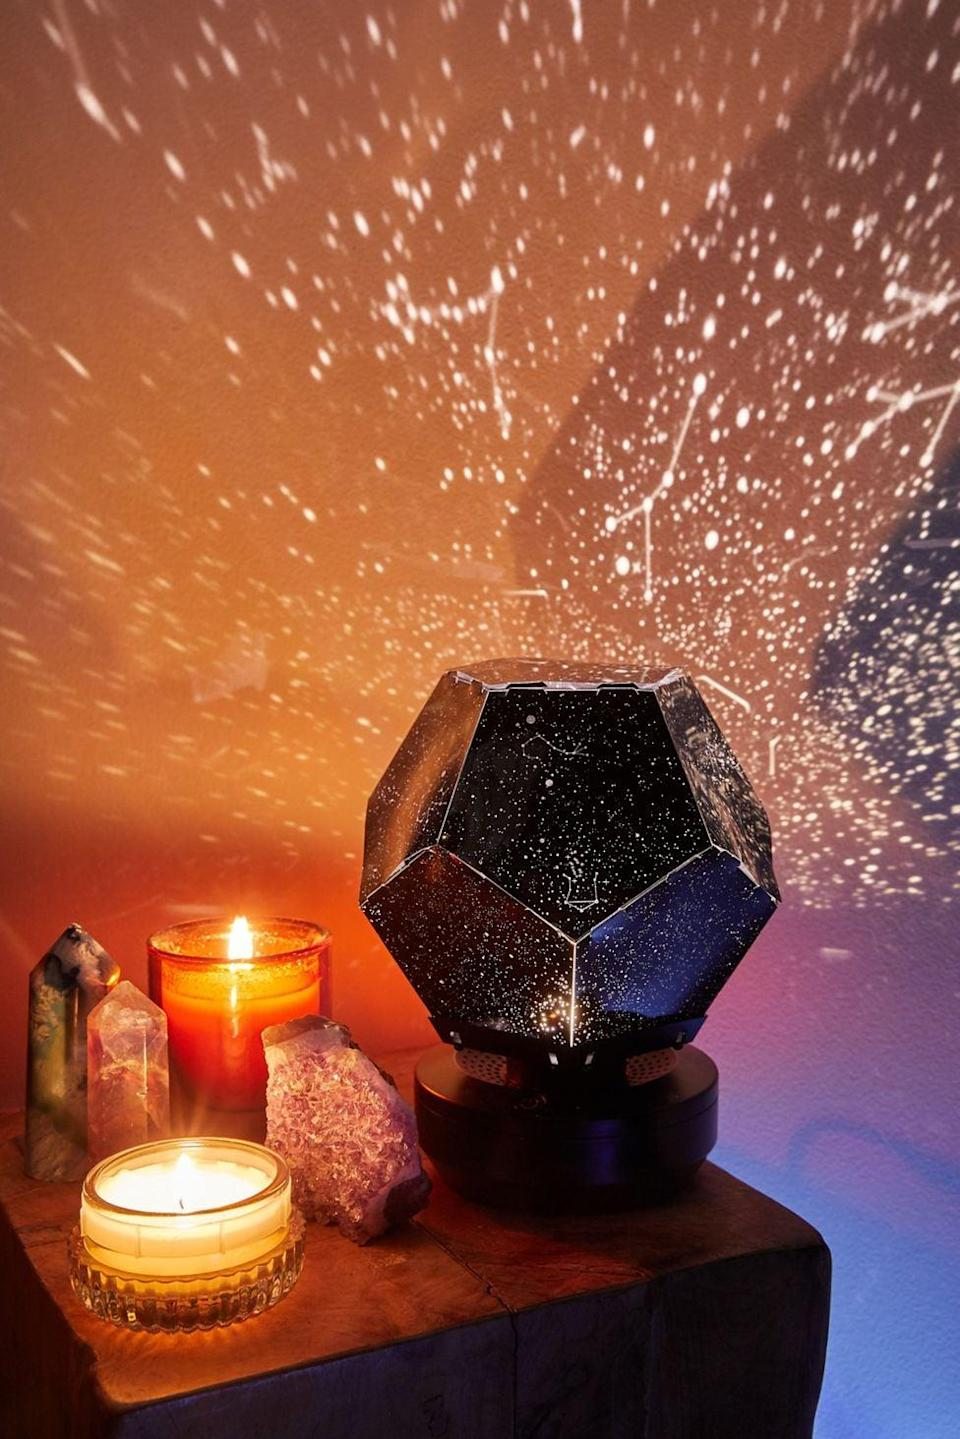 <p>Get this <span>Brilliant Ideas UO Exclusive Galaxy Star Projector</span> ($40) for the person who loves space. It makes for a seriously cool nightlight and dorm decor.</p>